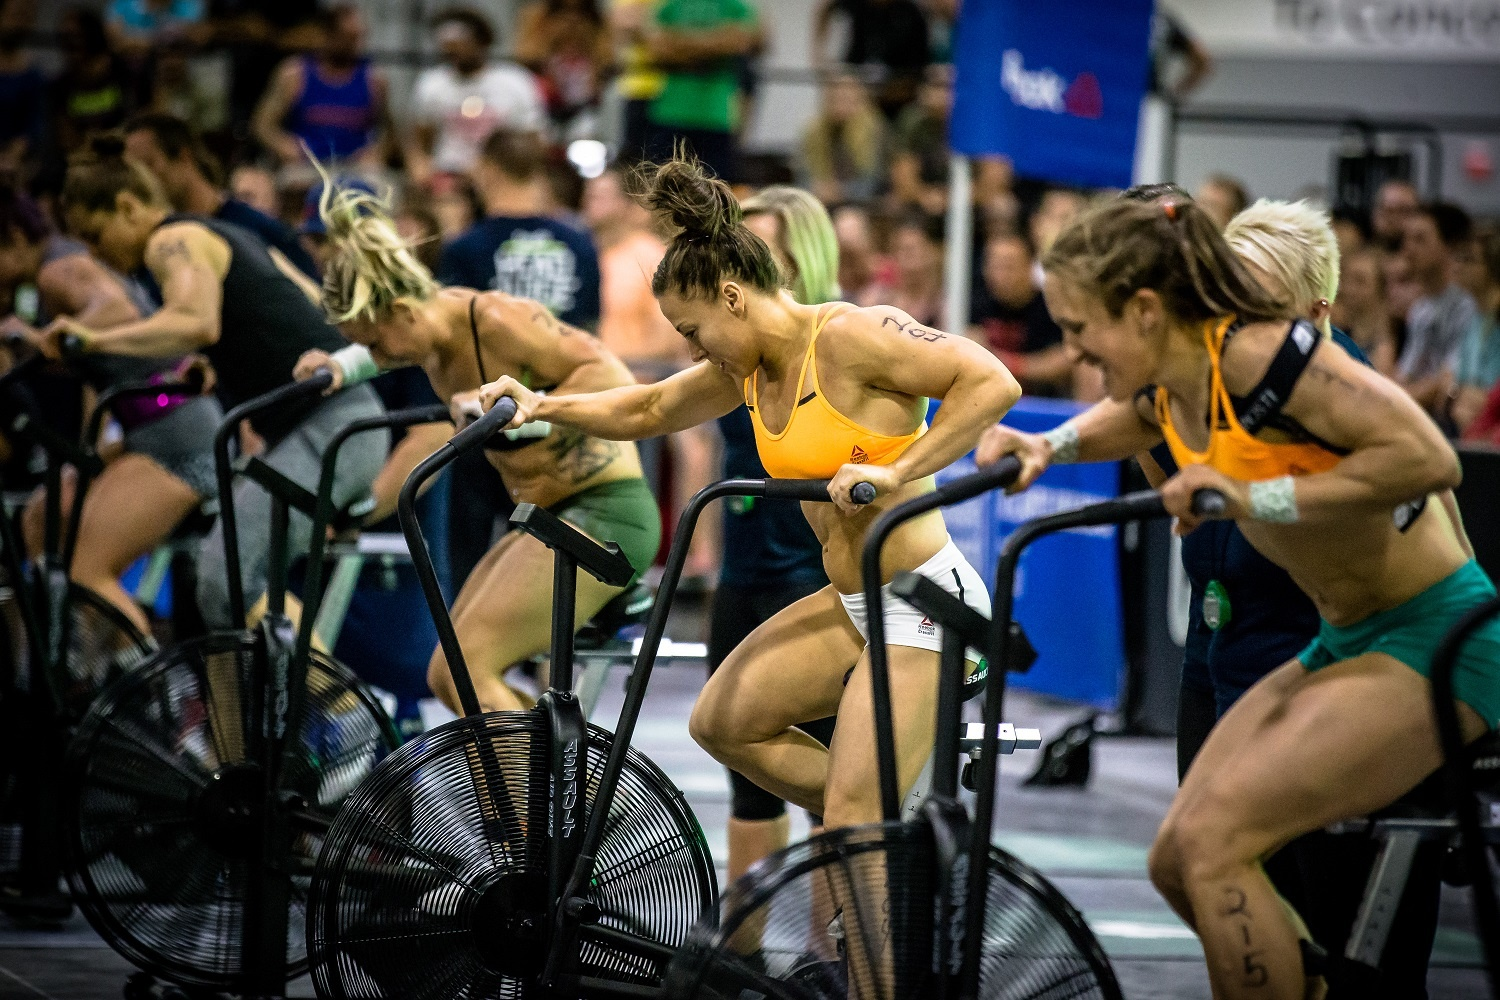 emily-bridgers-crossfit-regionals-3-bike.jpg